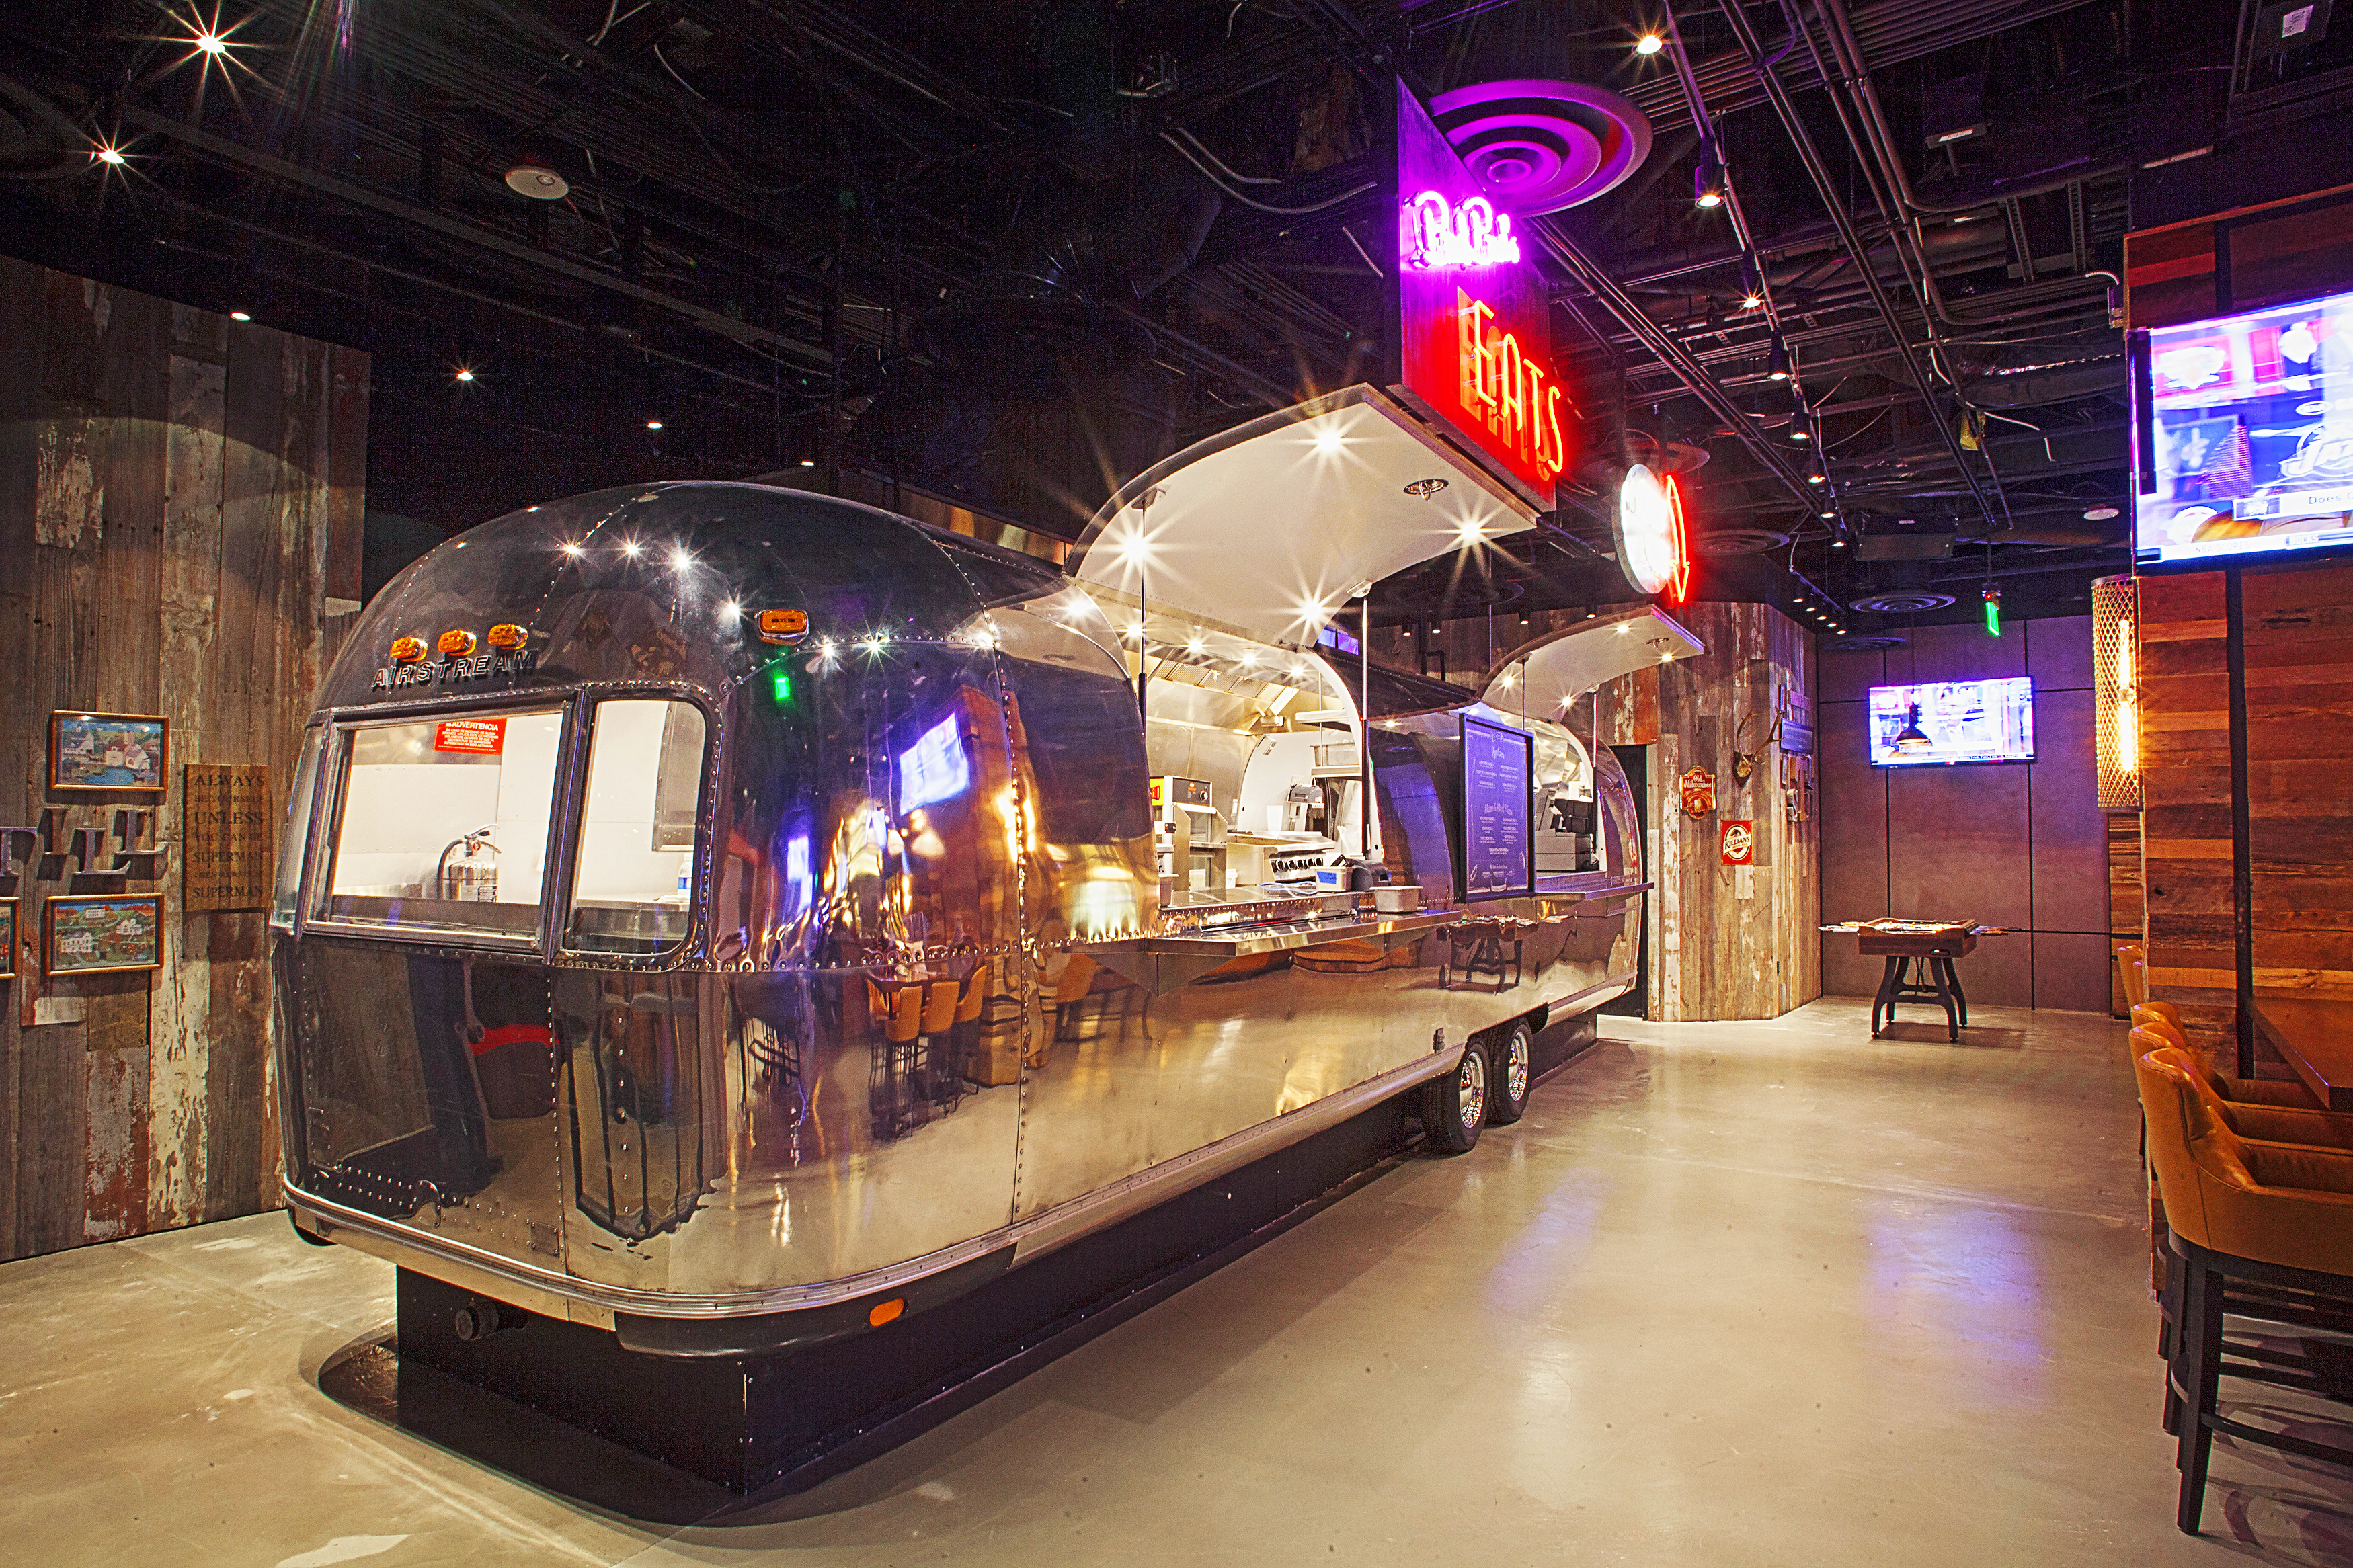 The Still A Las Vegas Restaurant With An Airstream Trailer Kitchen